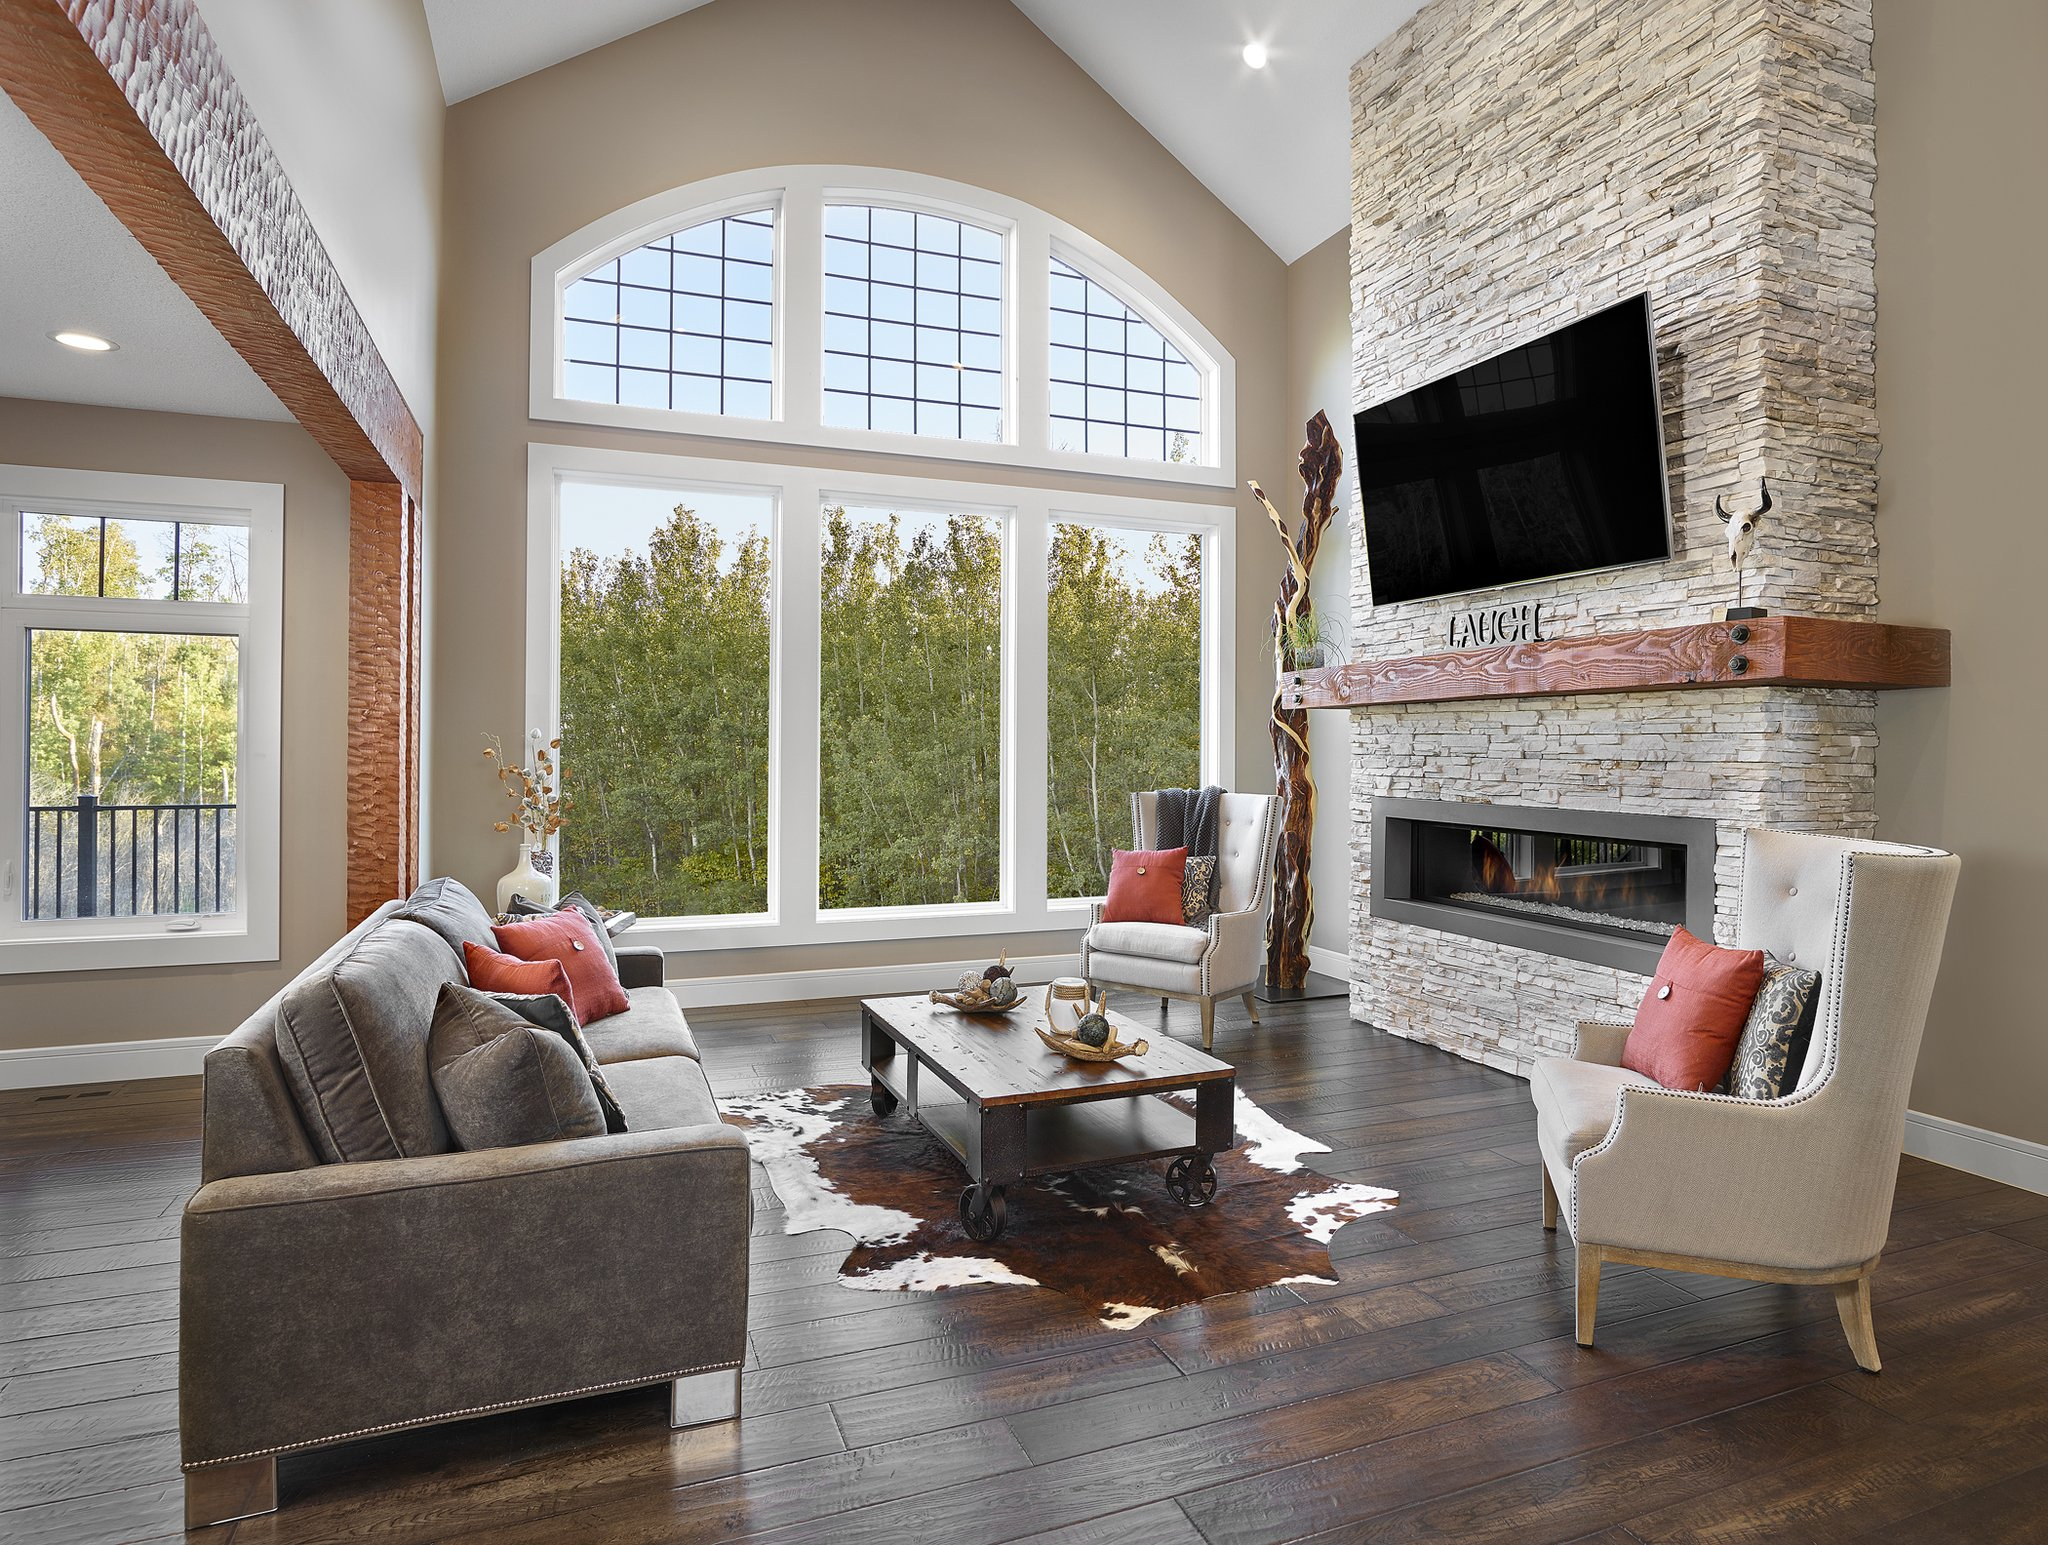 Living area with high ceilings large cream stone fireplace red pillows on neutral colored sofas